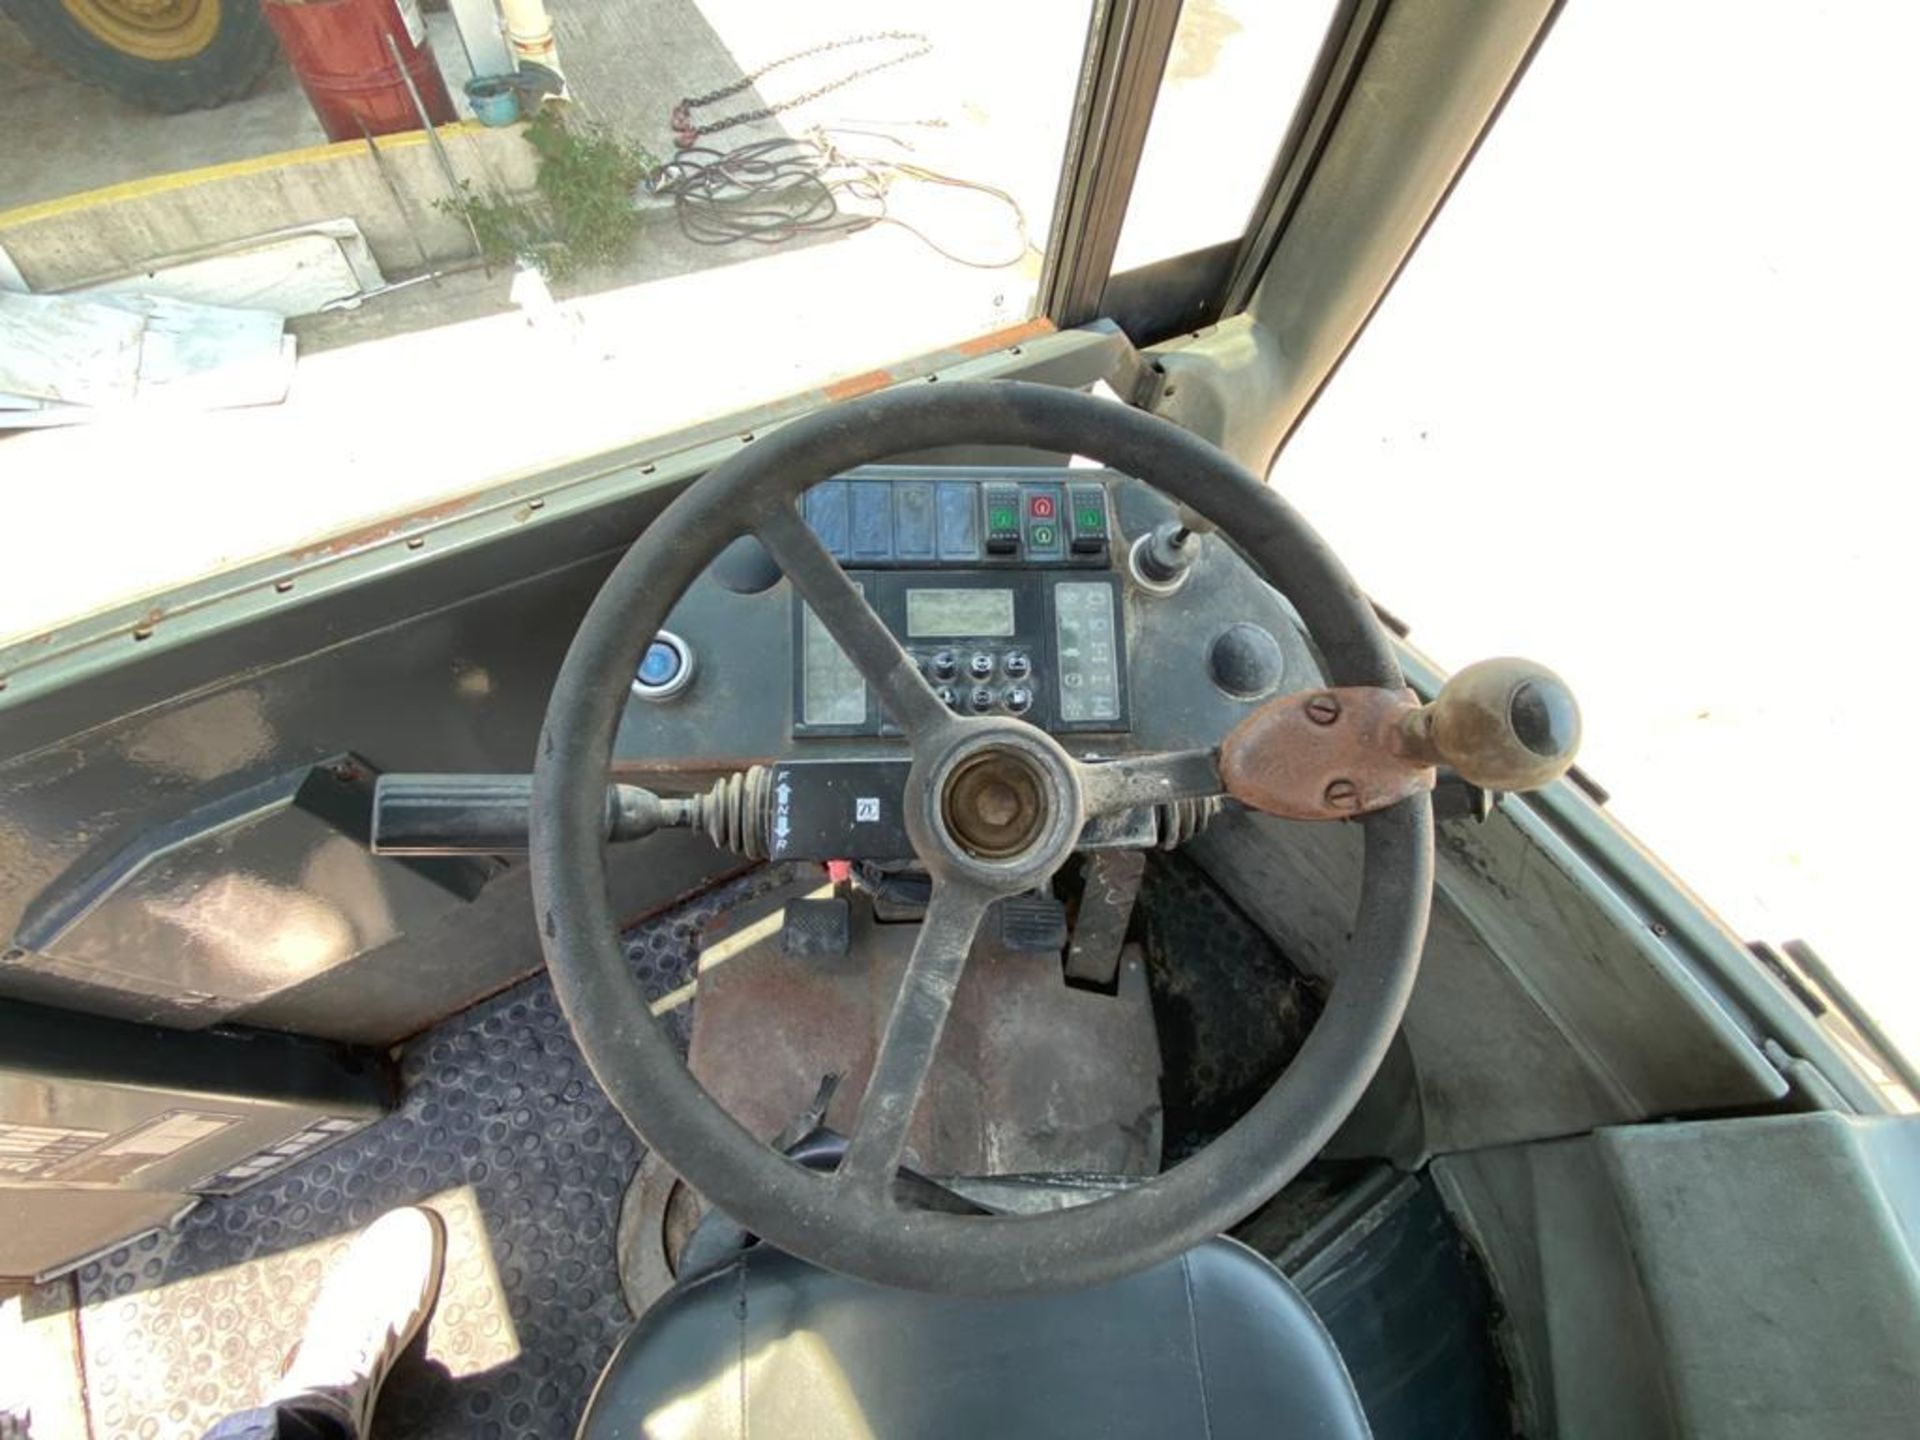 Terberg Capacity 2002 Terminal Tractor, automatic transmission, with Volvo motor - Image 22 of 57